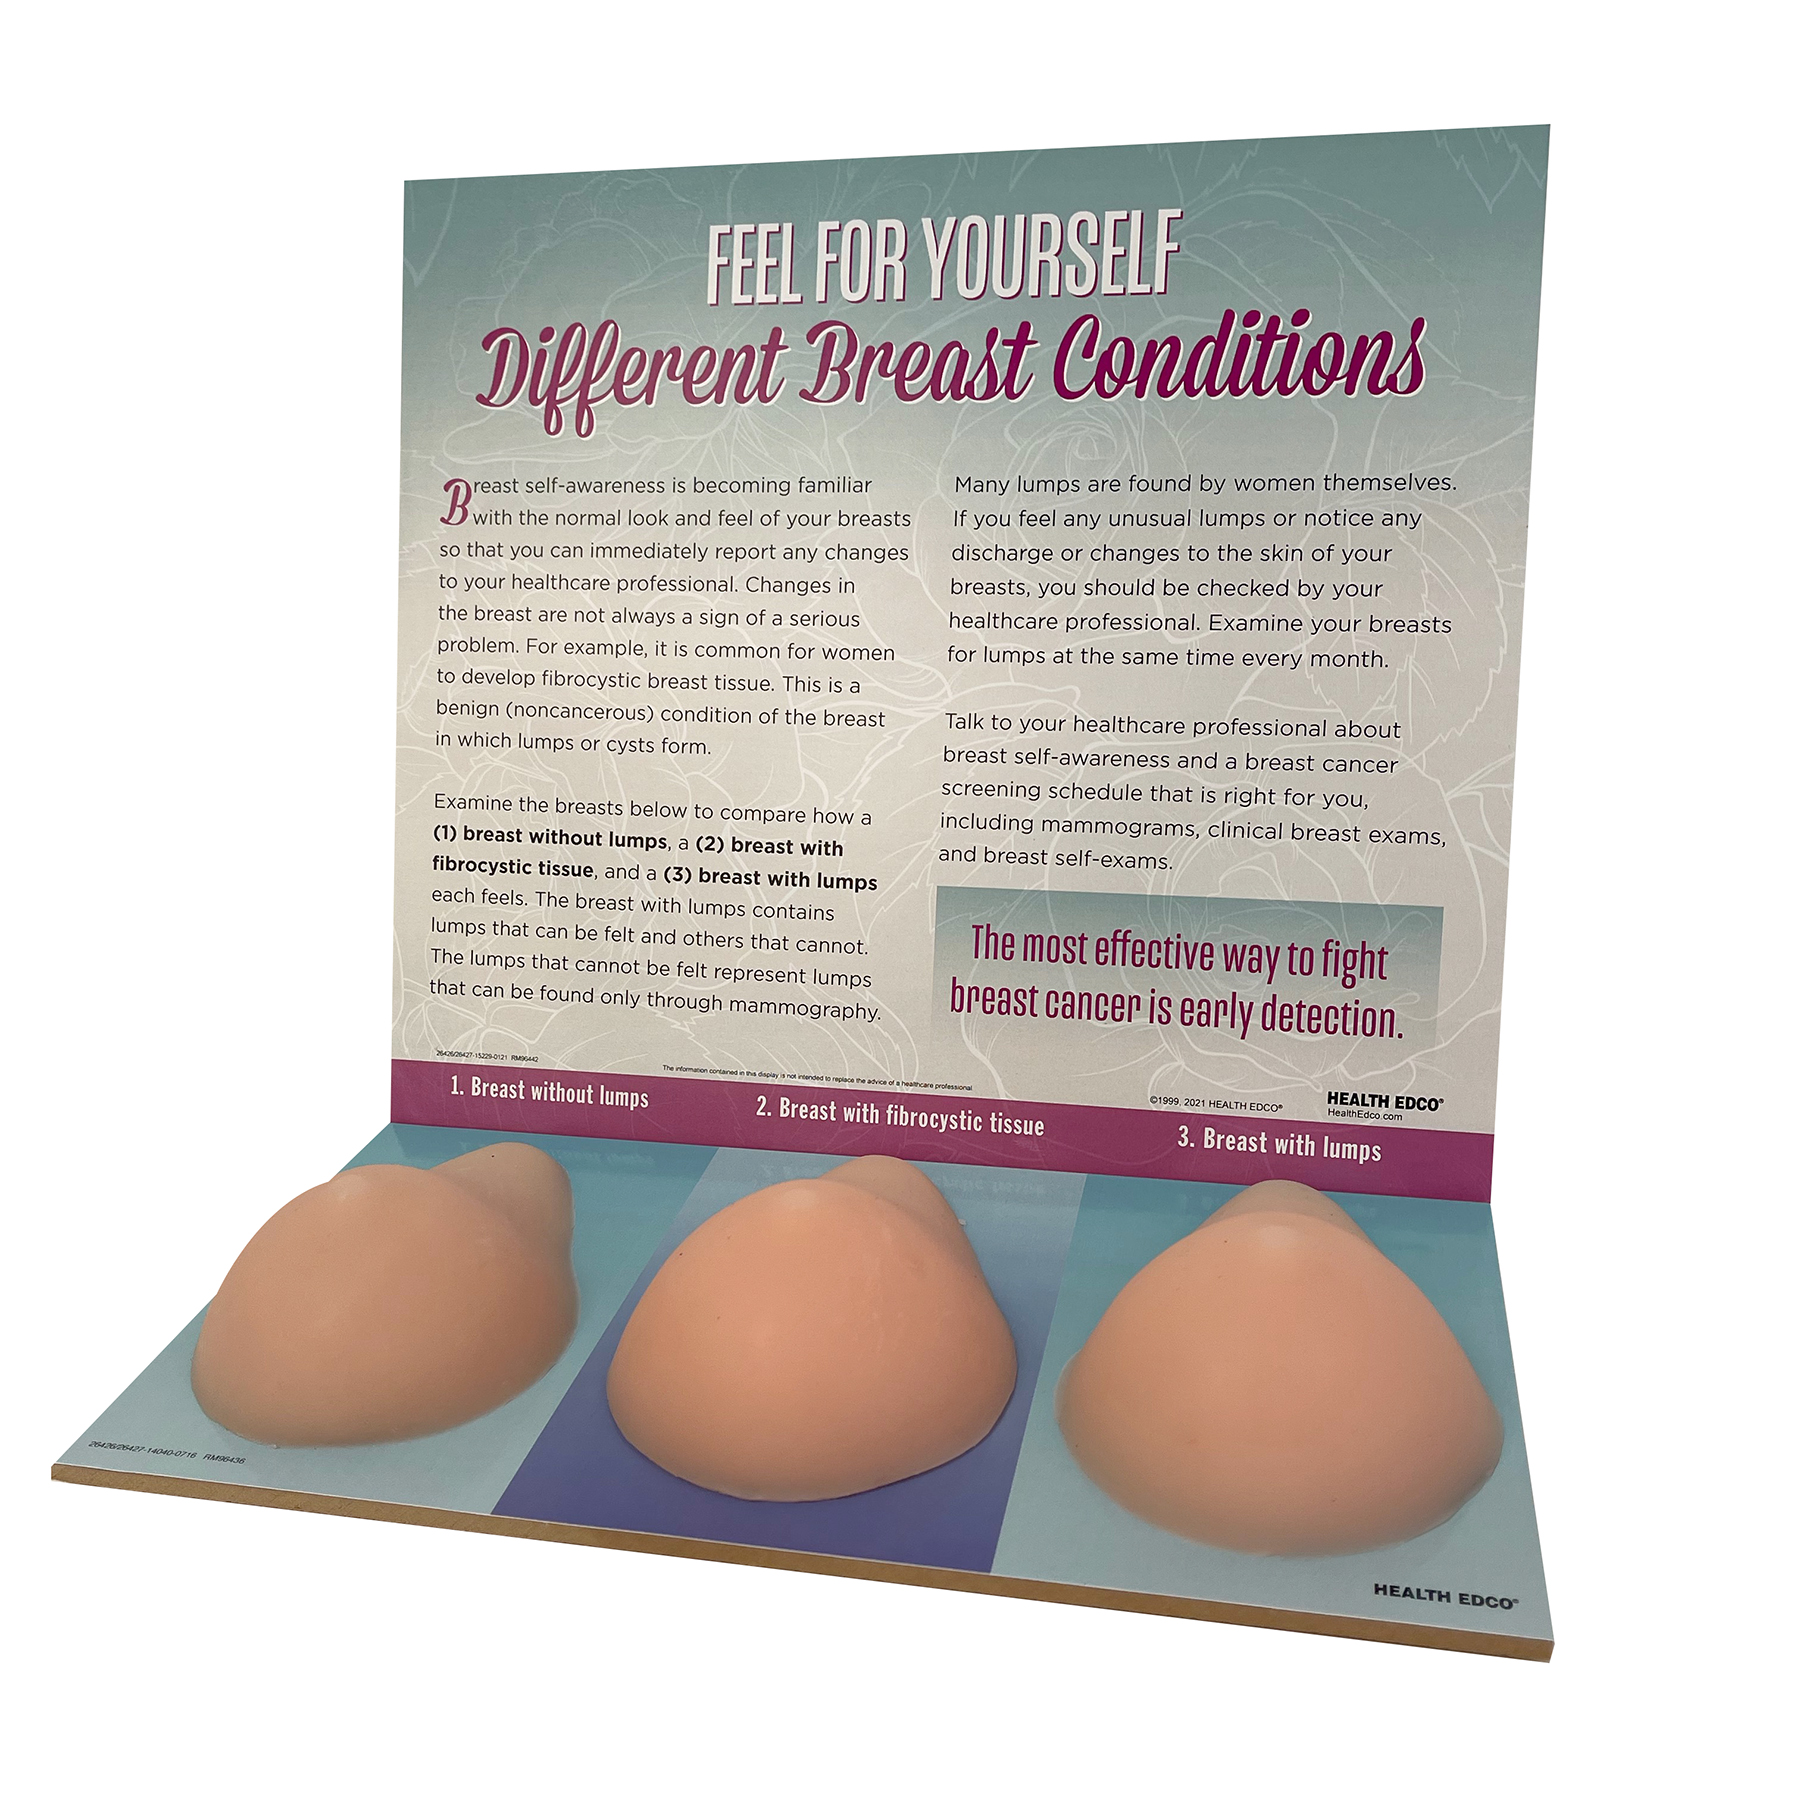 Multi-type BSE model, breast self-exam, breast conditions palpable lumps, Spanish language side, Health Edco, 26426, beige version